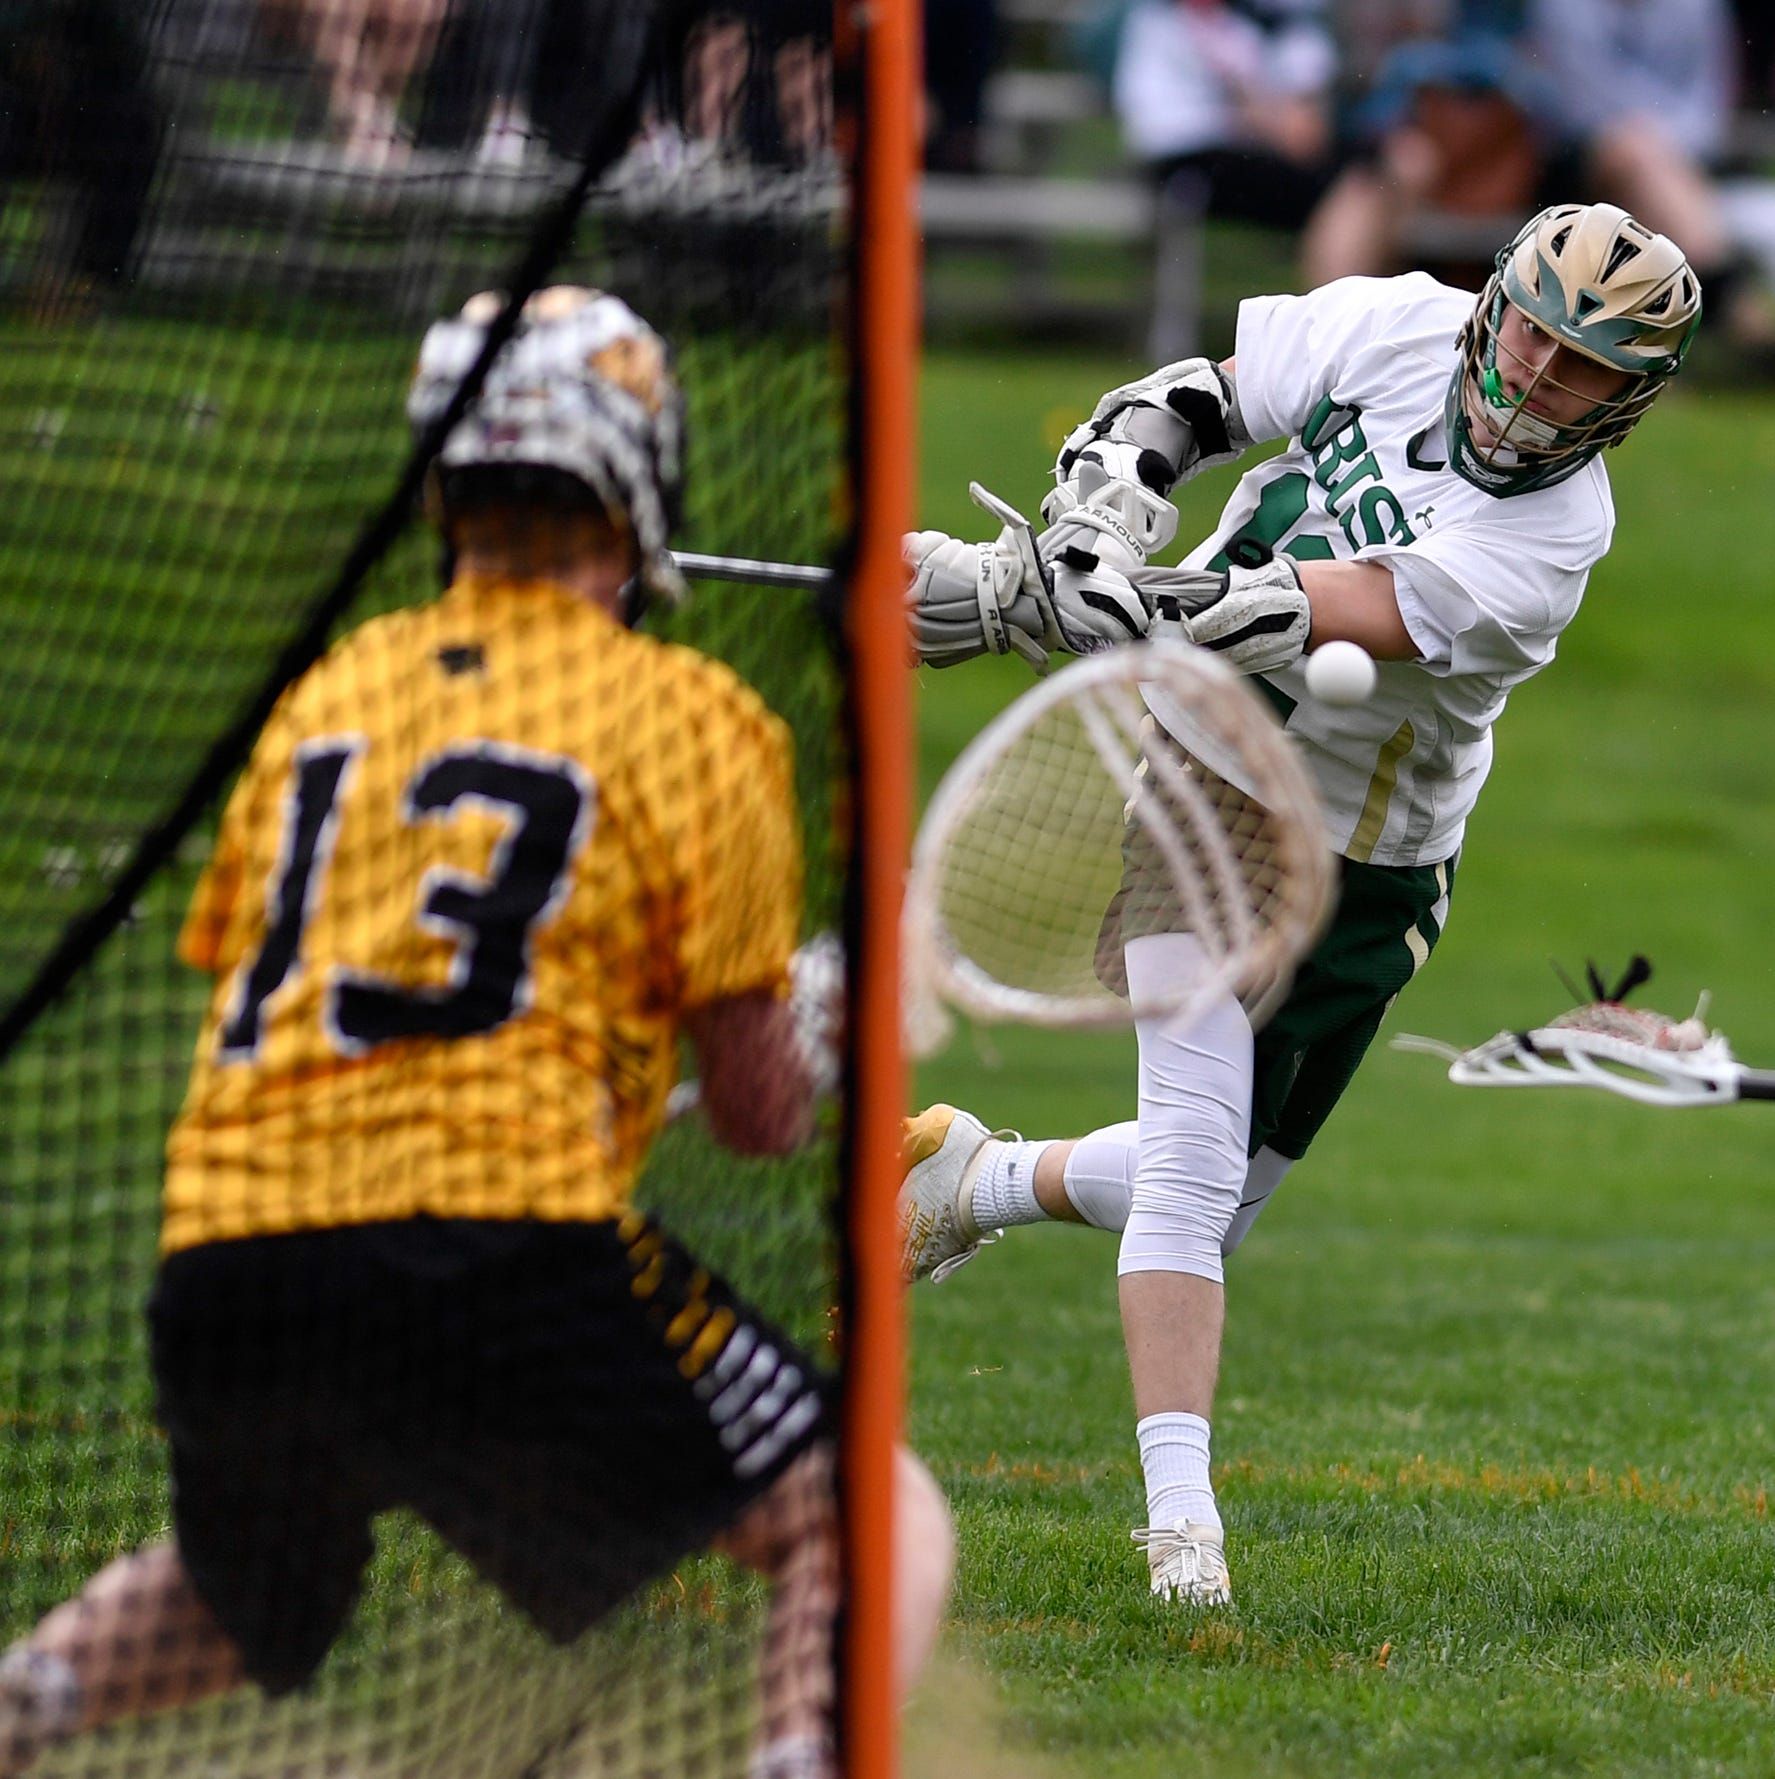 PREP ROUNDUP, THURSDAY, APRIL 25: 'Perfect day' for York Catholic boys' lacrosse team